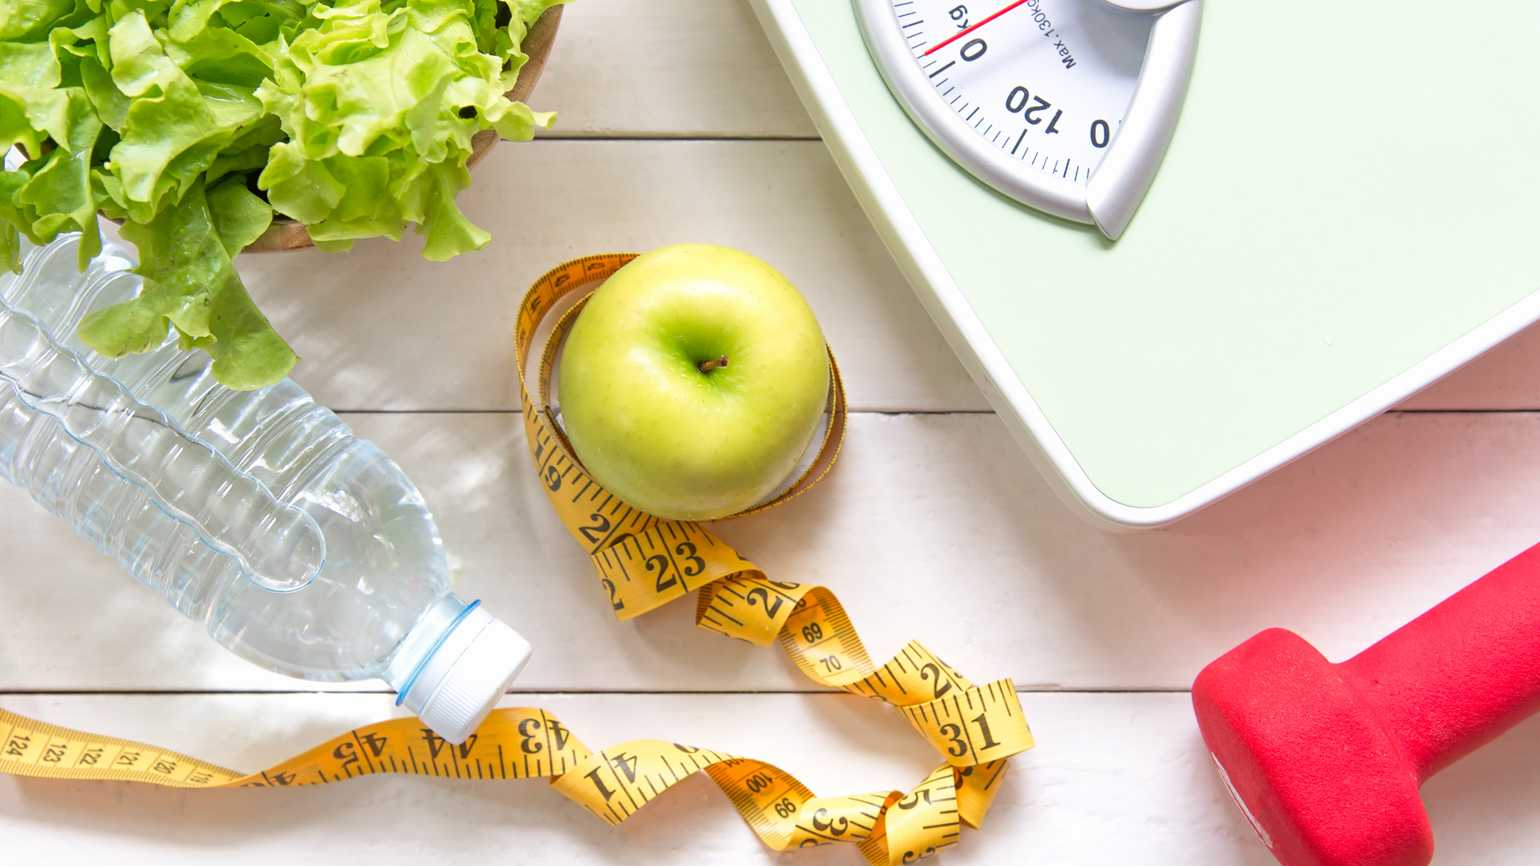 Essential tools for weight loss such as a bottle of water, a scale, and a dumbbell